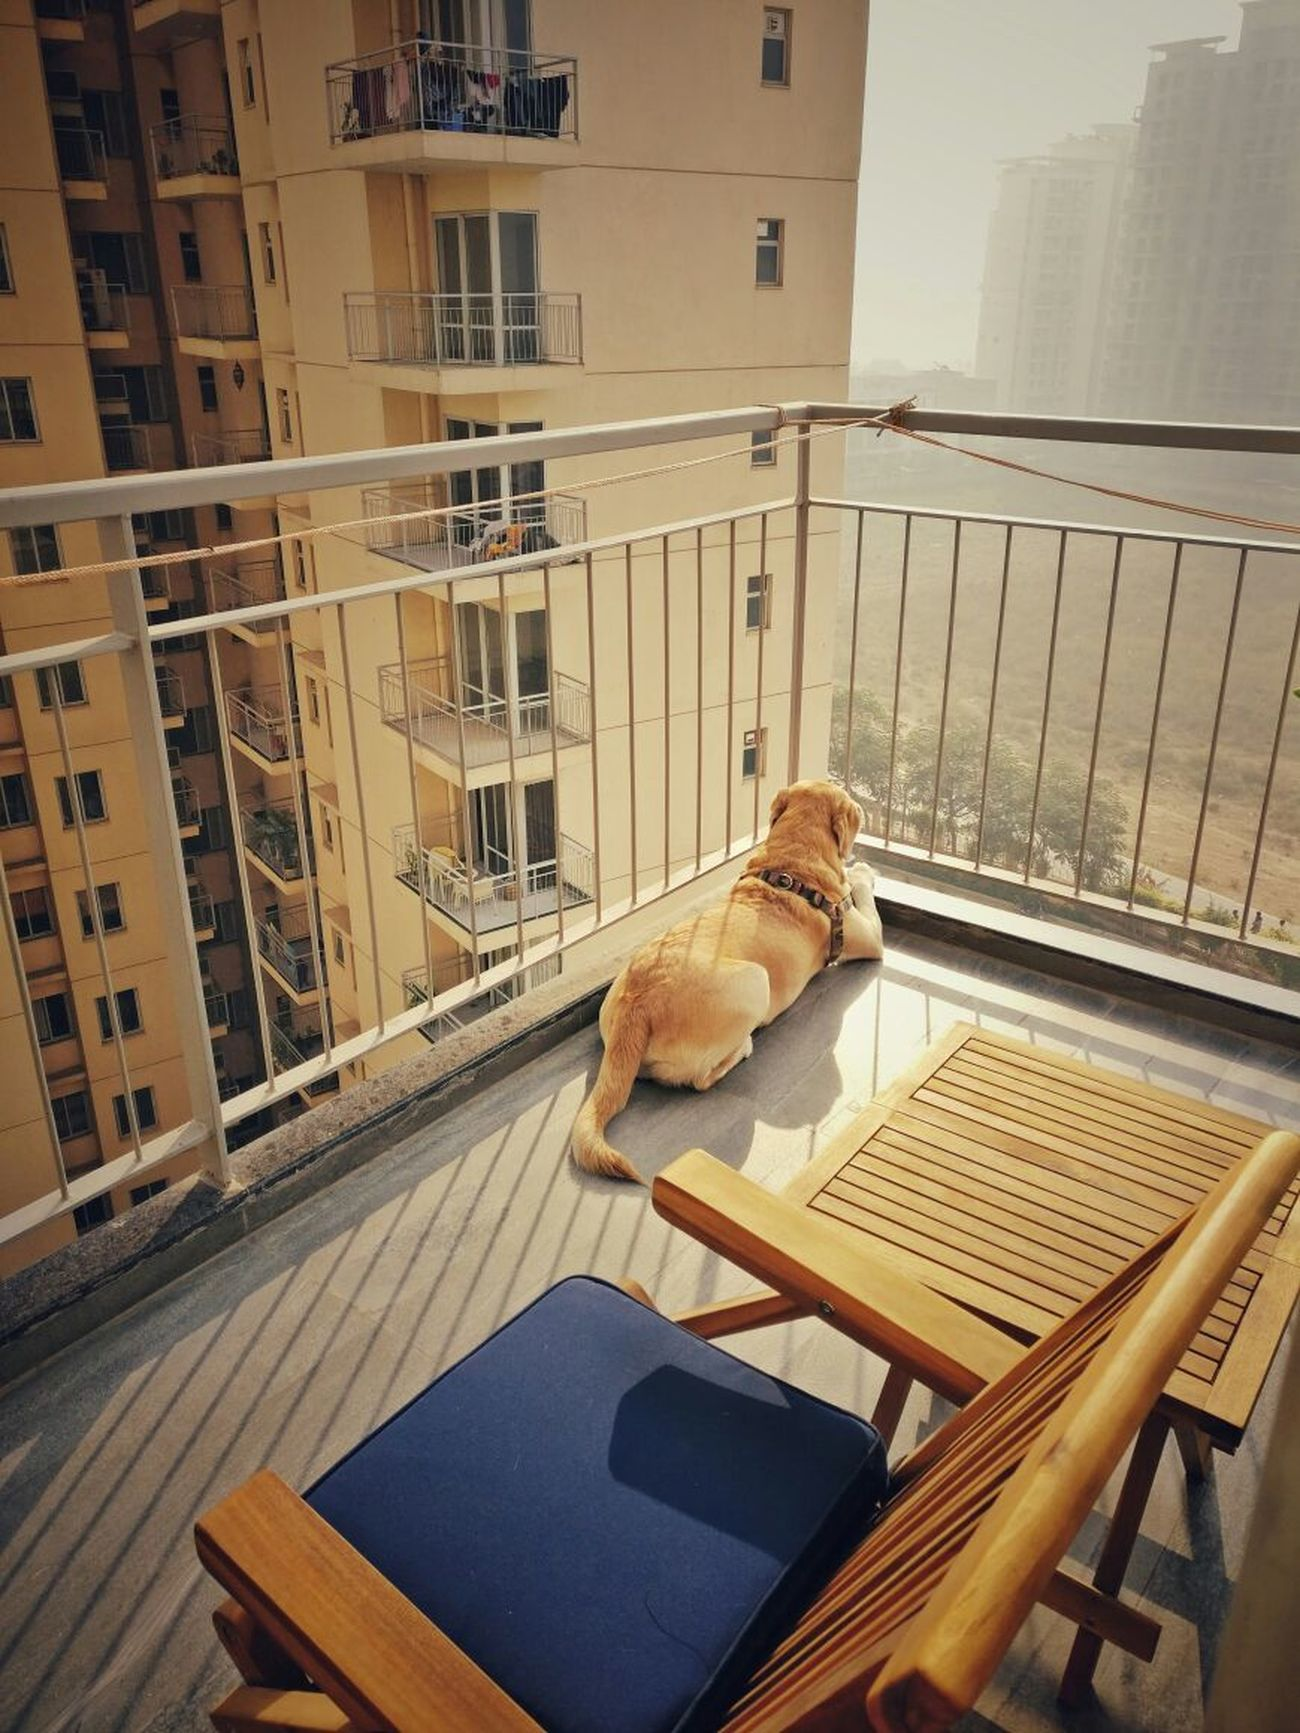 Animal Themes EyeEmNewHere Architecture Dogslife Calmness Summer Coming Sunlight Sunshine EyeEm Animal Lover EyeEm Best Shots Dogslife Dogs Of EyeEm Archtectural Element The Week On EyeEm The Architect - 2017 EyeEm Awards Live For The Story